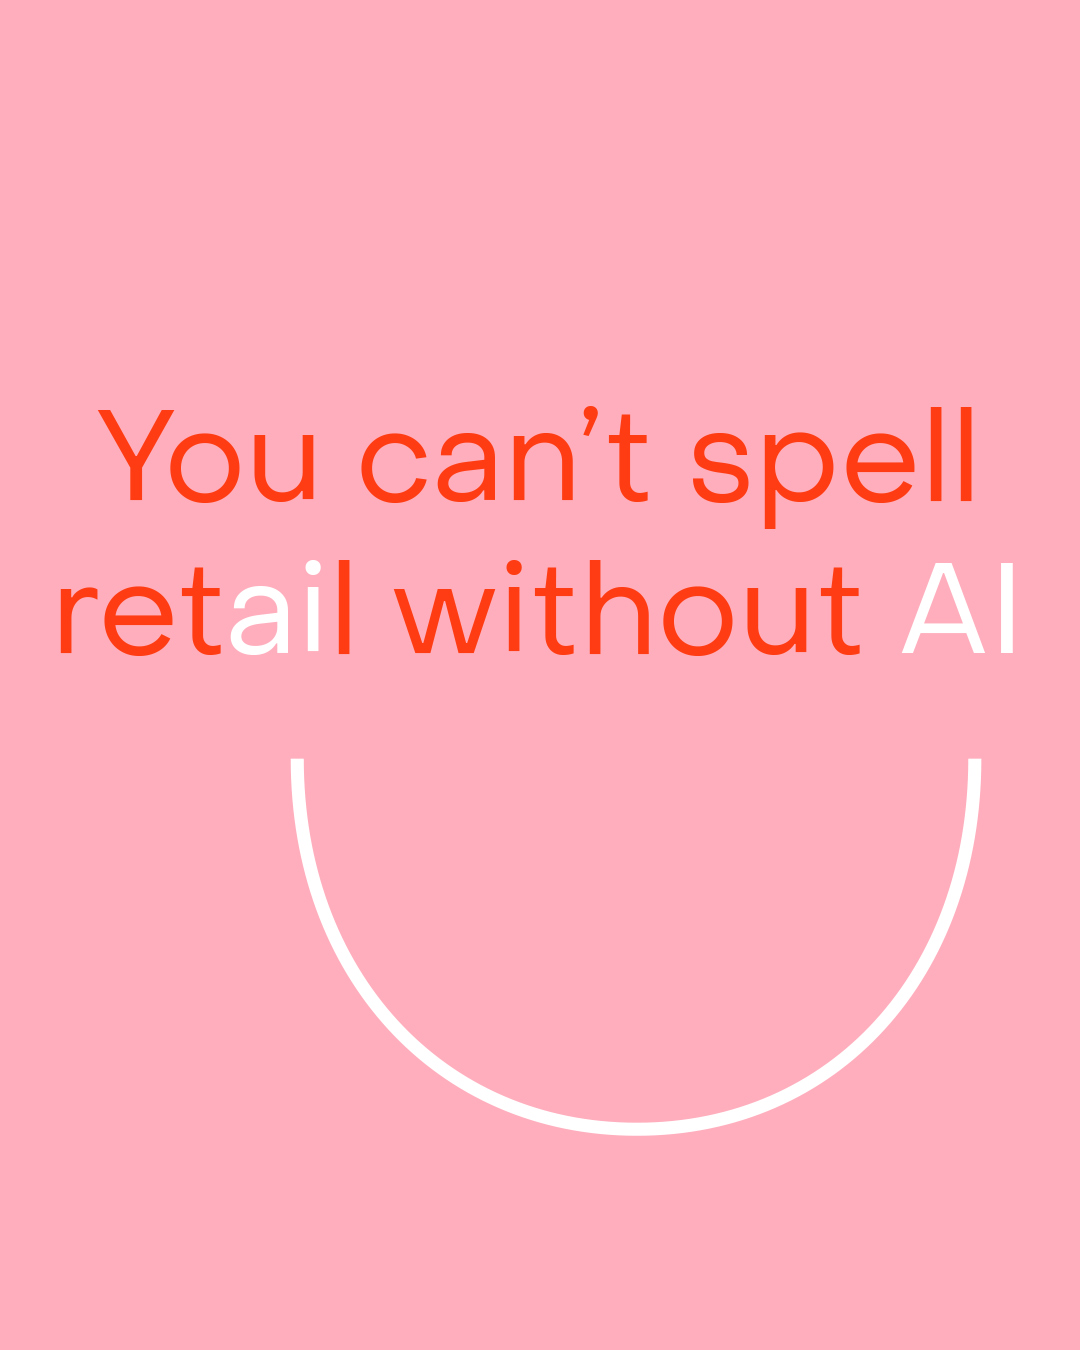 You can't have retail without ai with the company logo